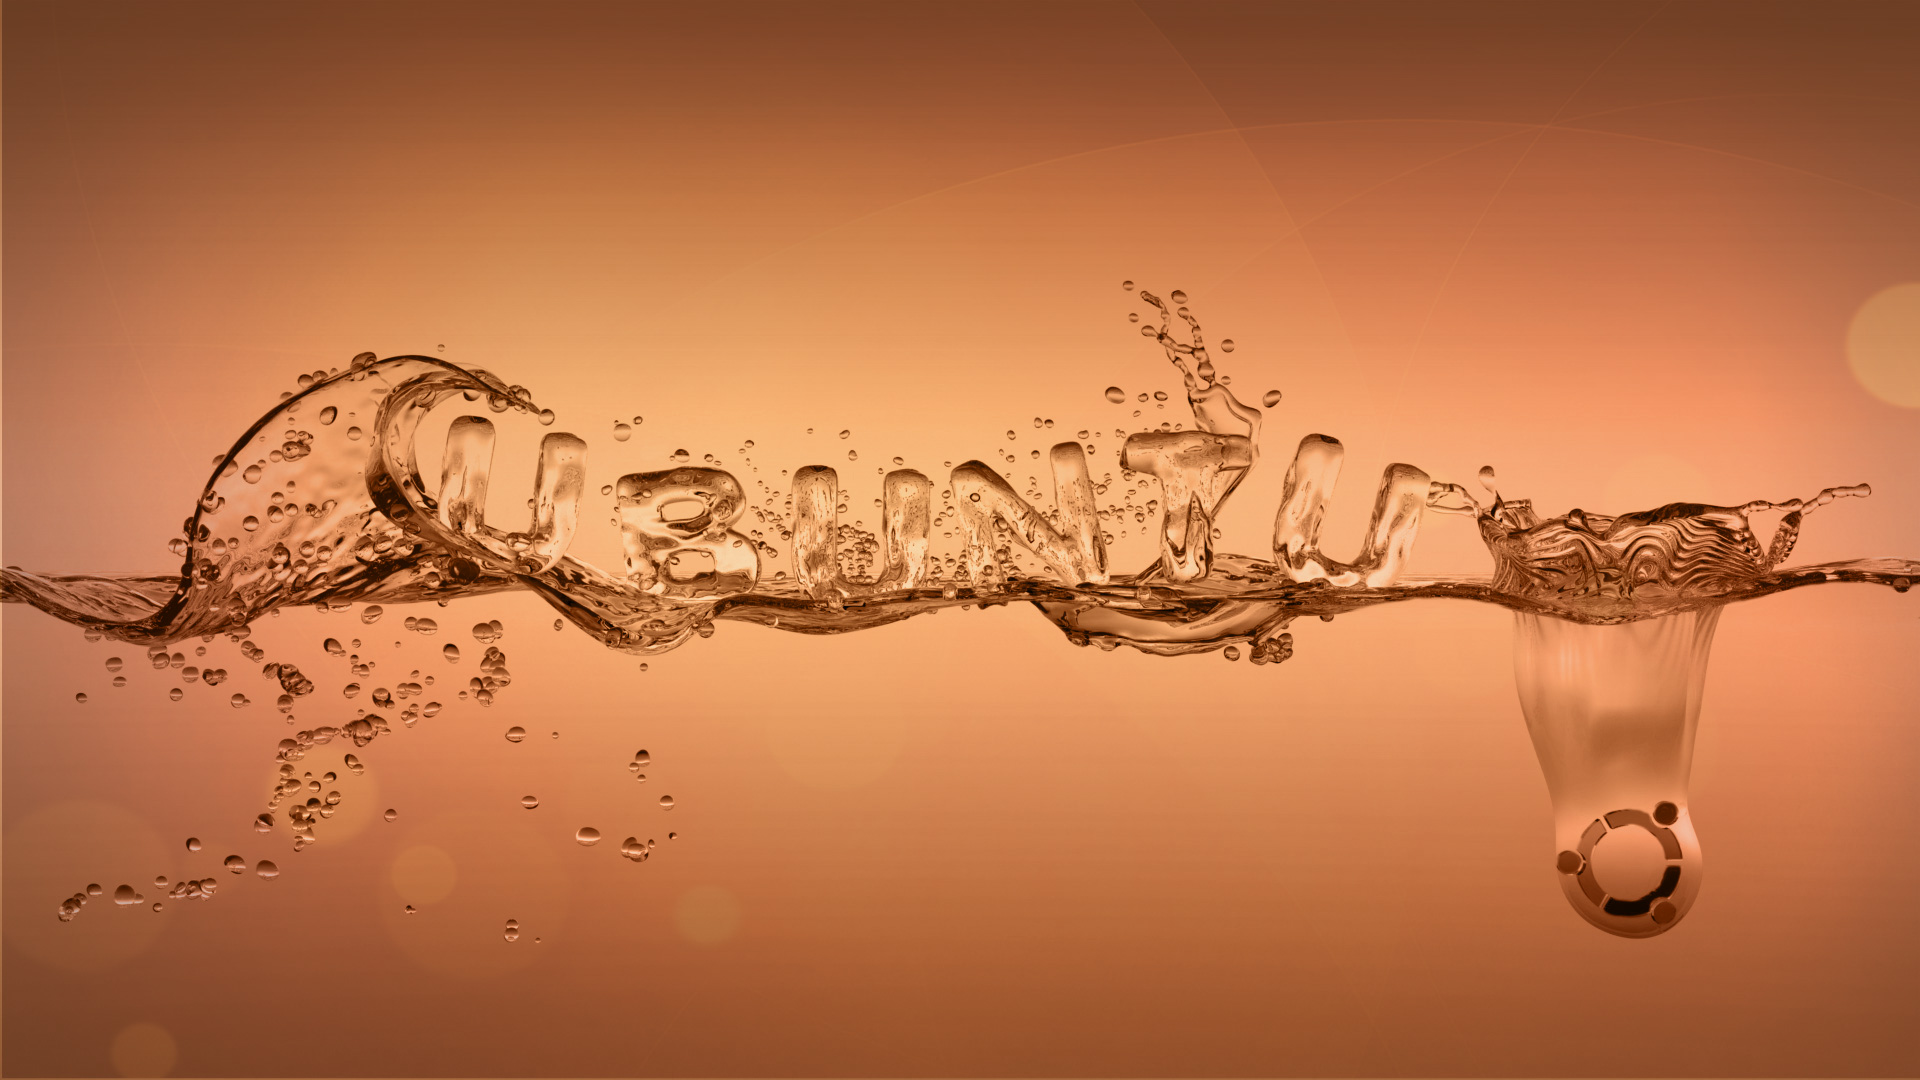 ubuntu wallpaper water